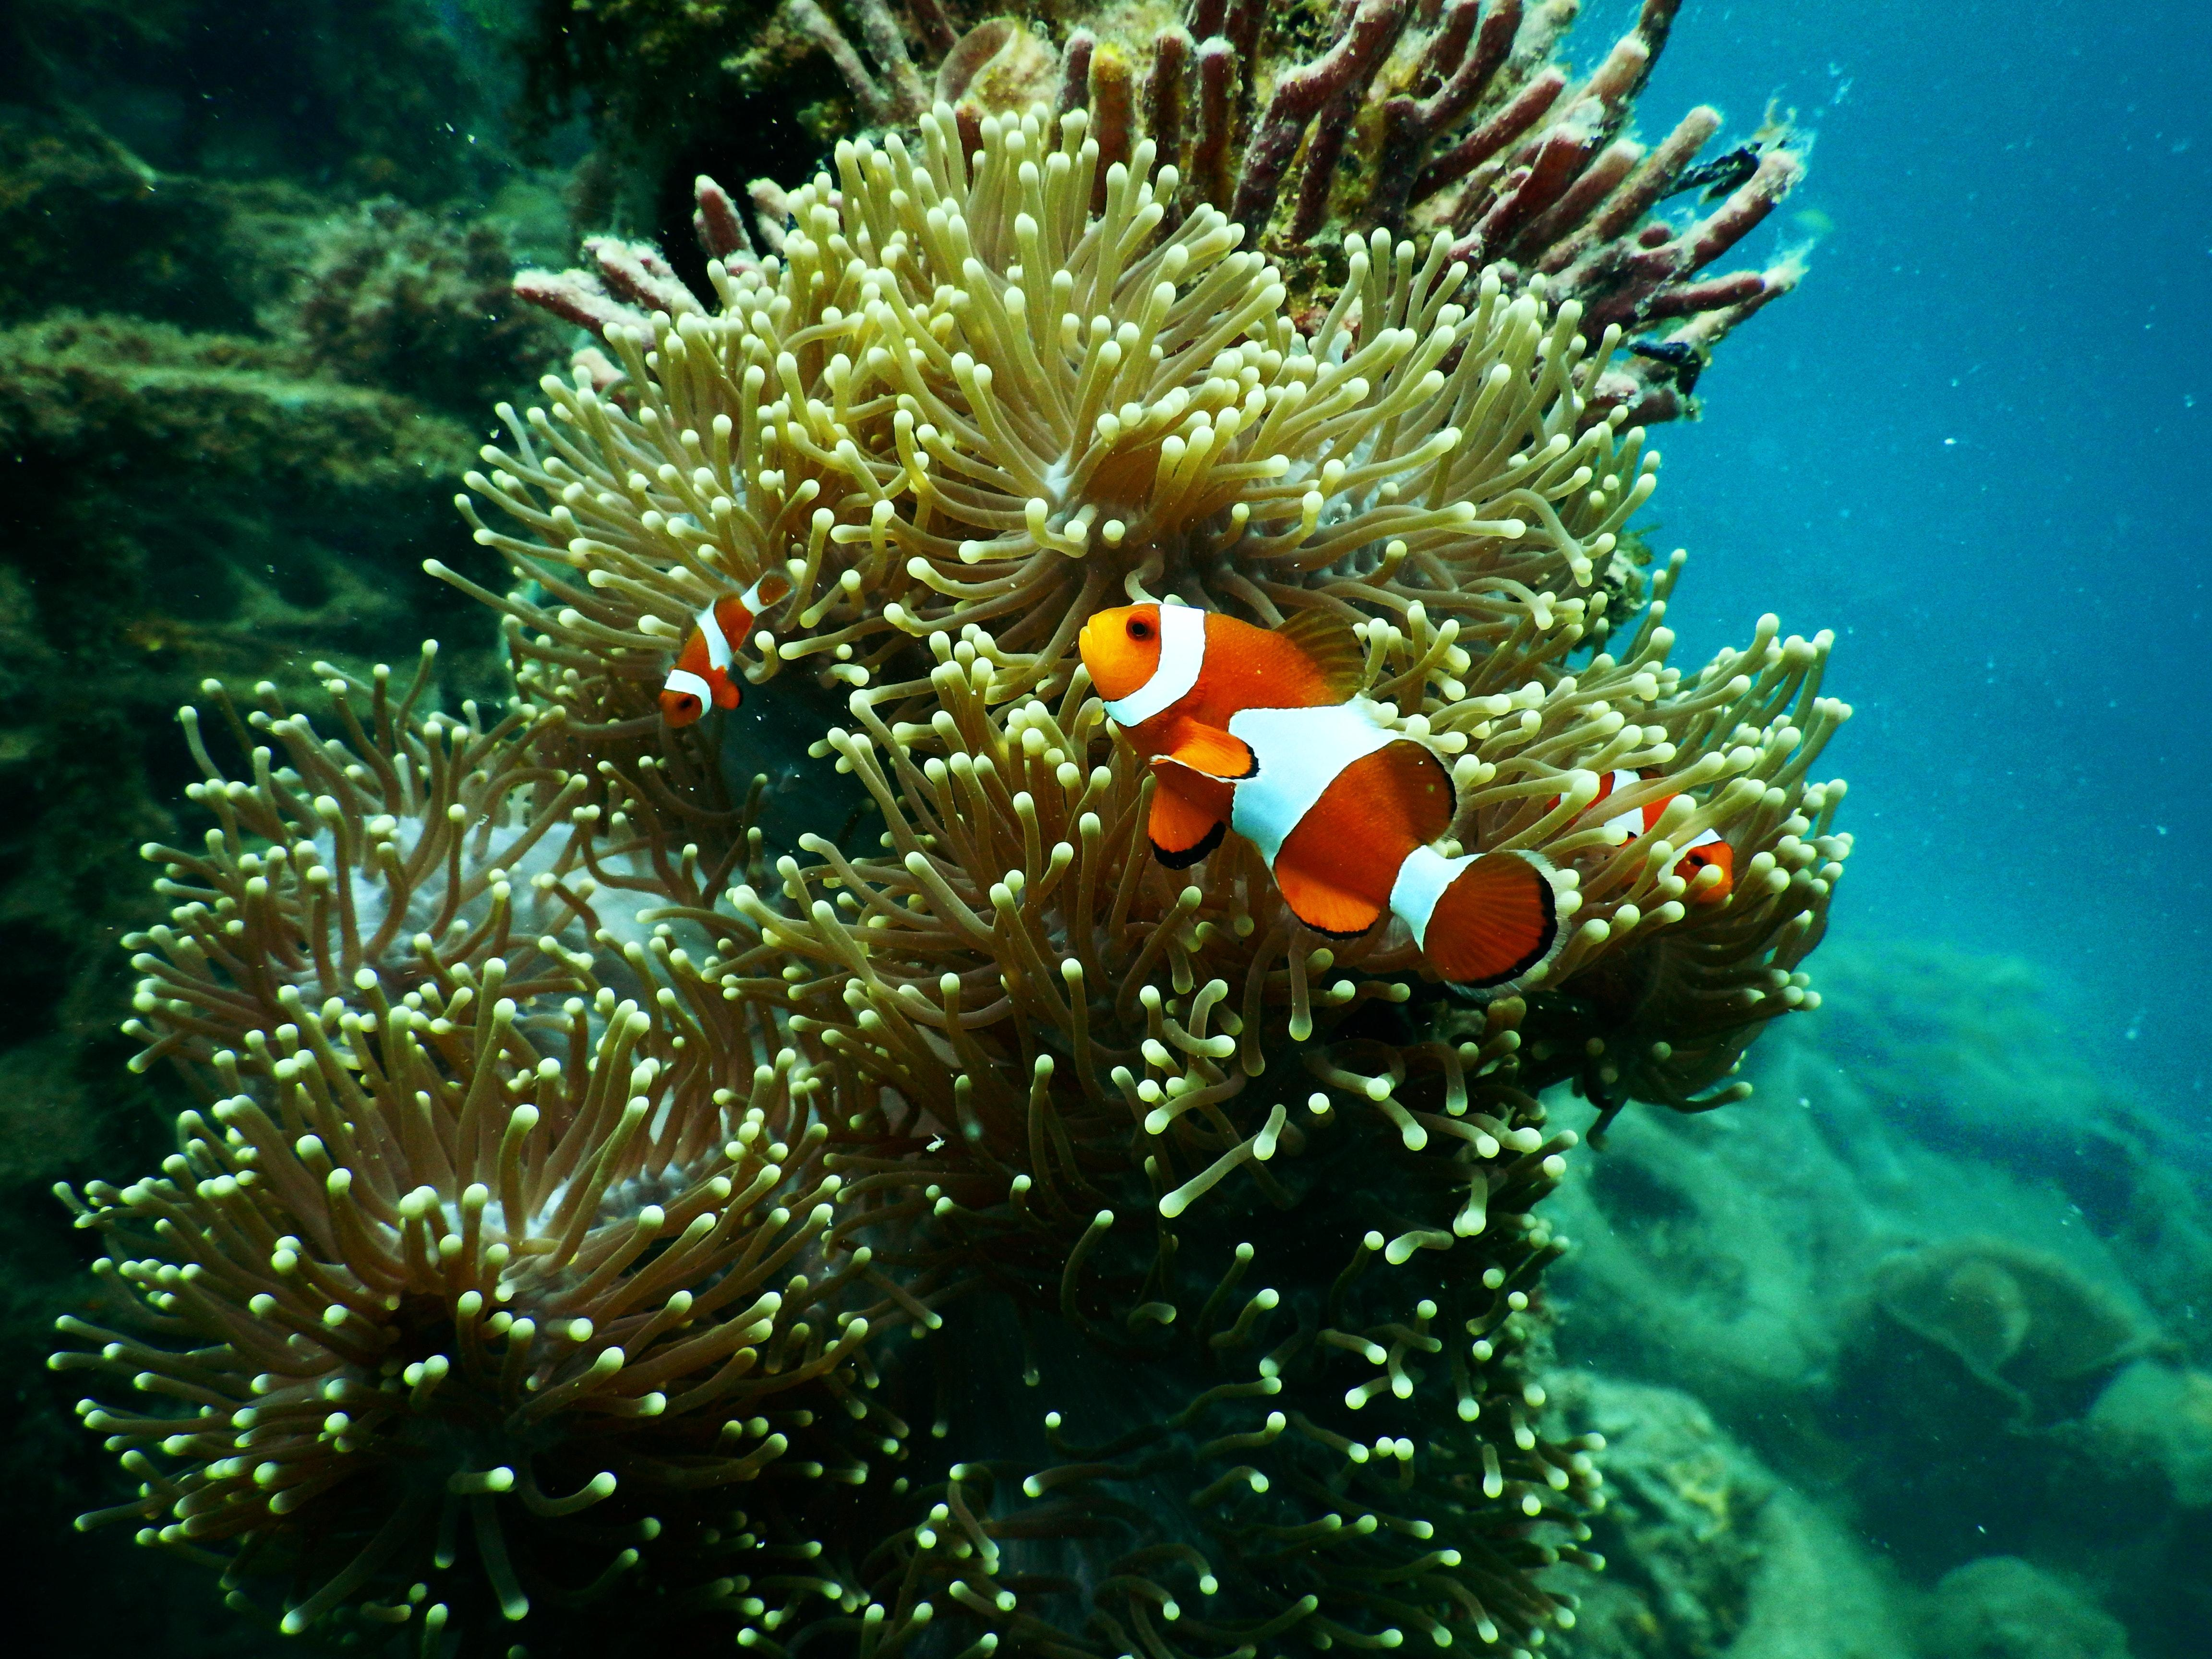 EM2 aquarium aquatic clown fish 1125979 1